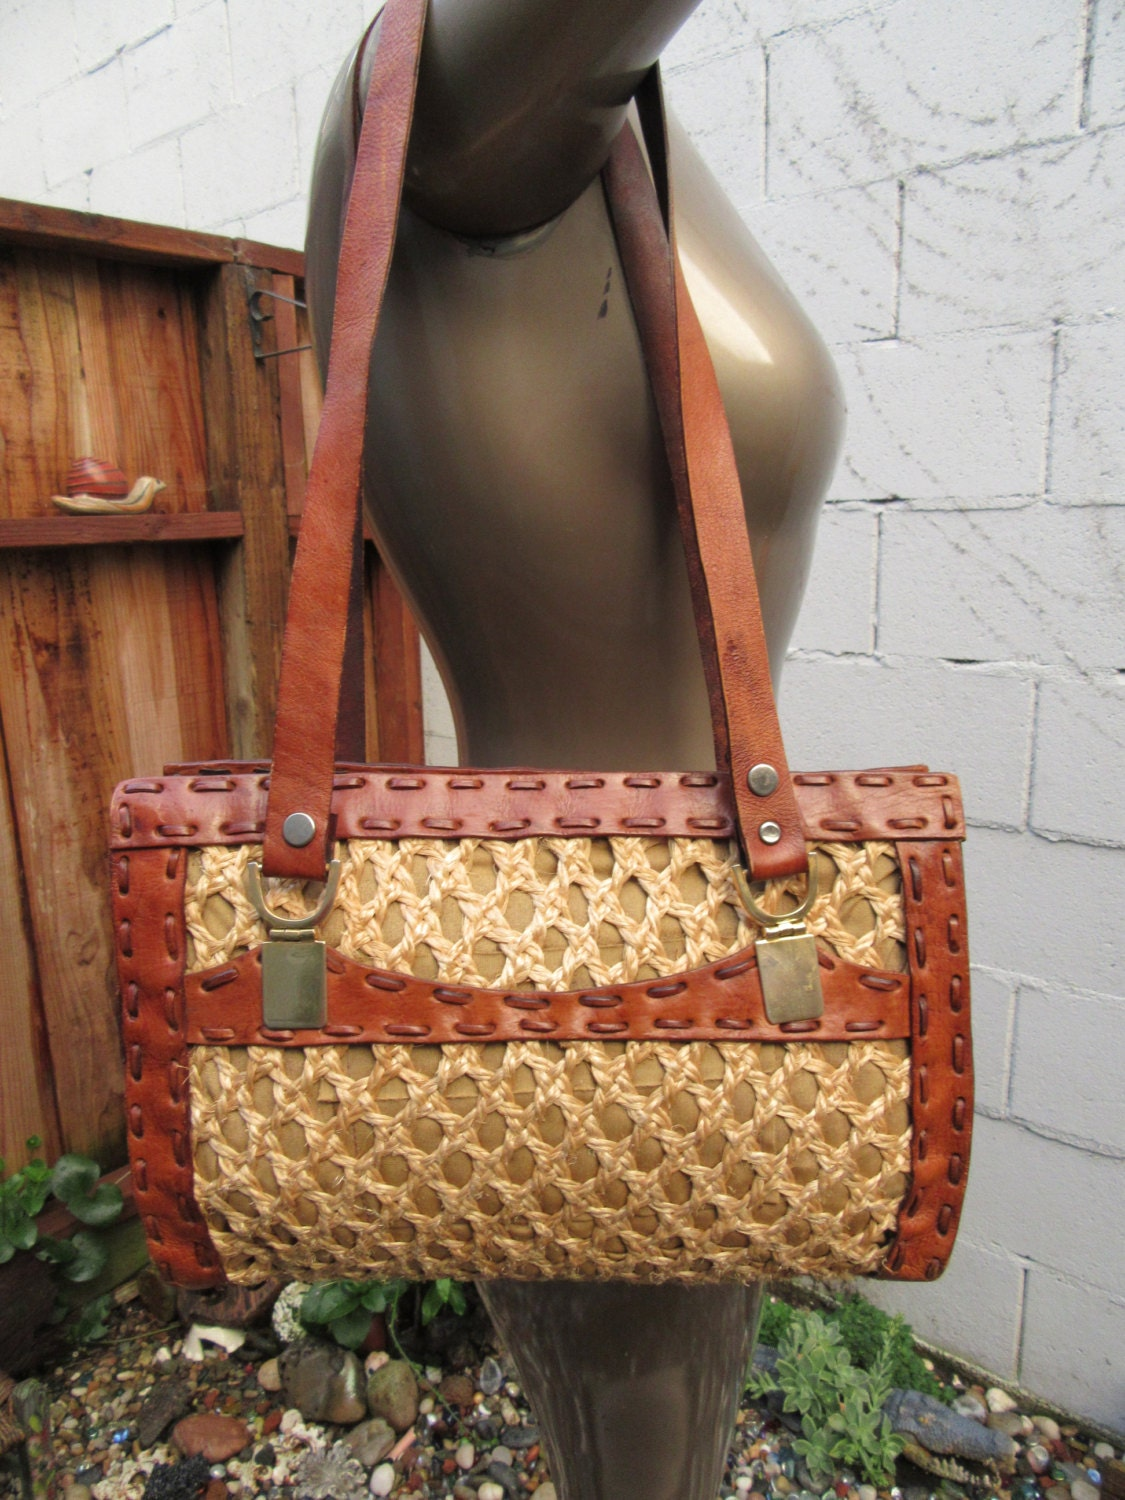 Basket Weaving With Raffia : Wicker leather tote handbag satchel raffia straw basket weave